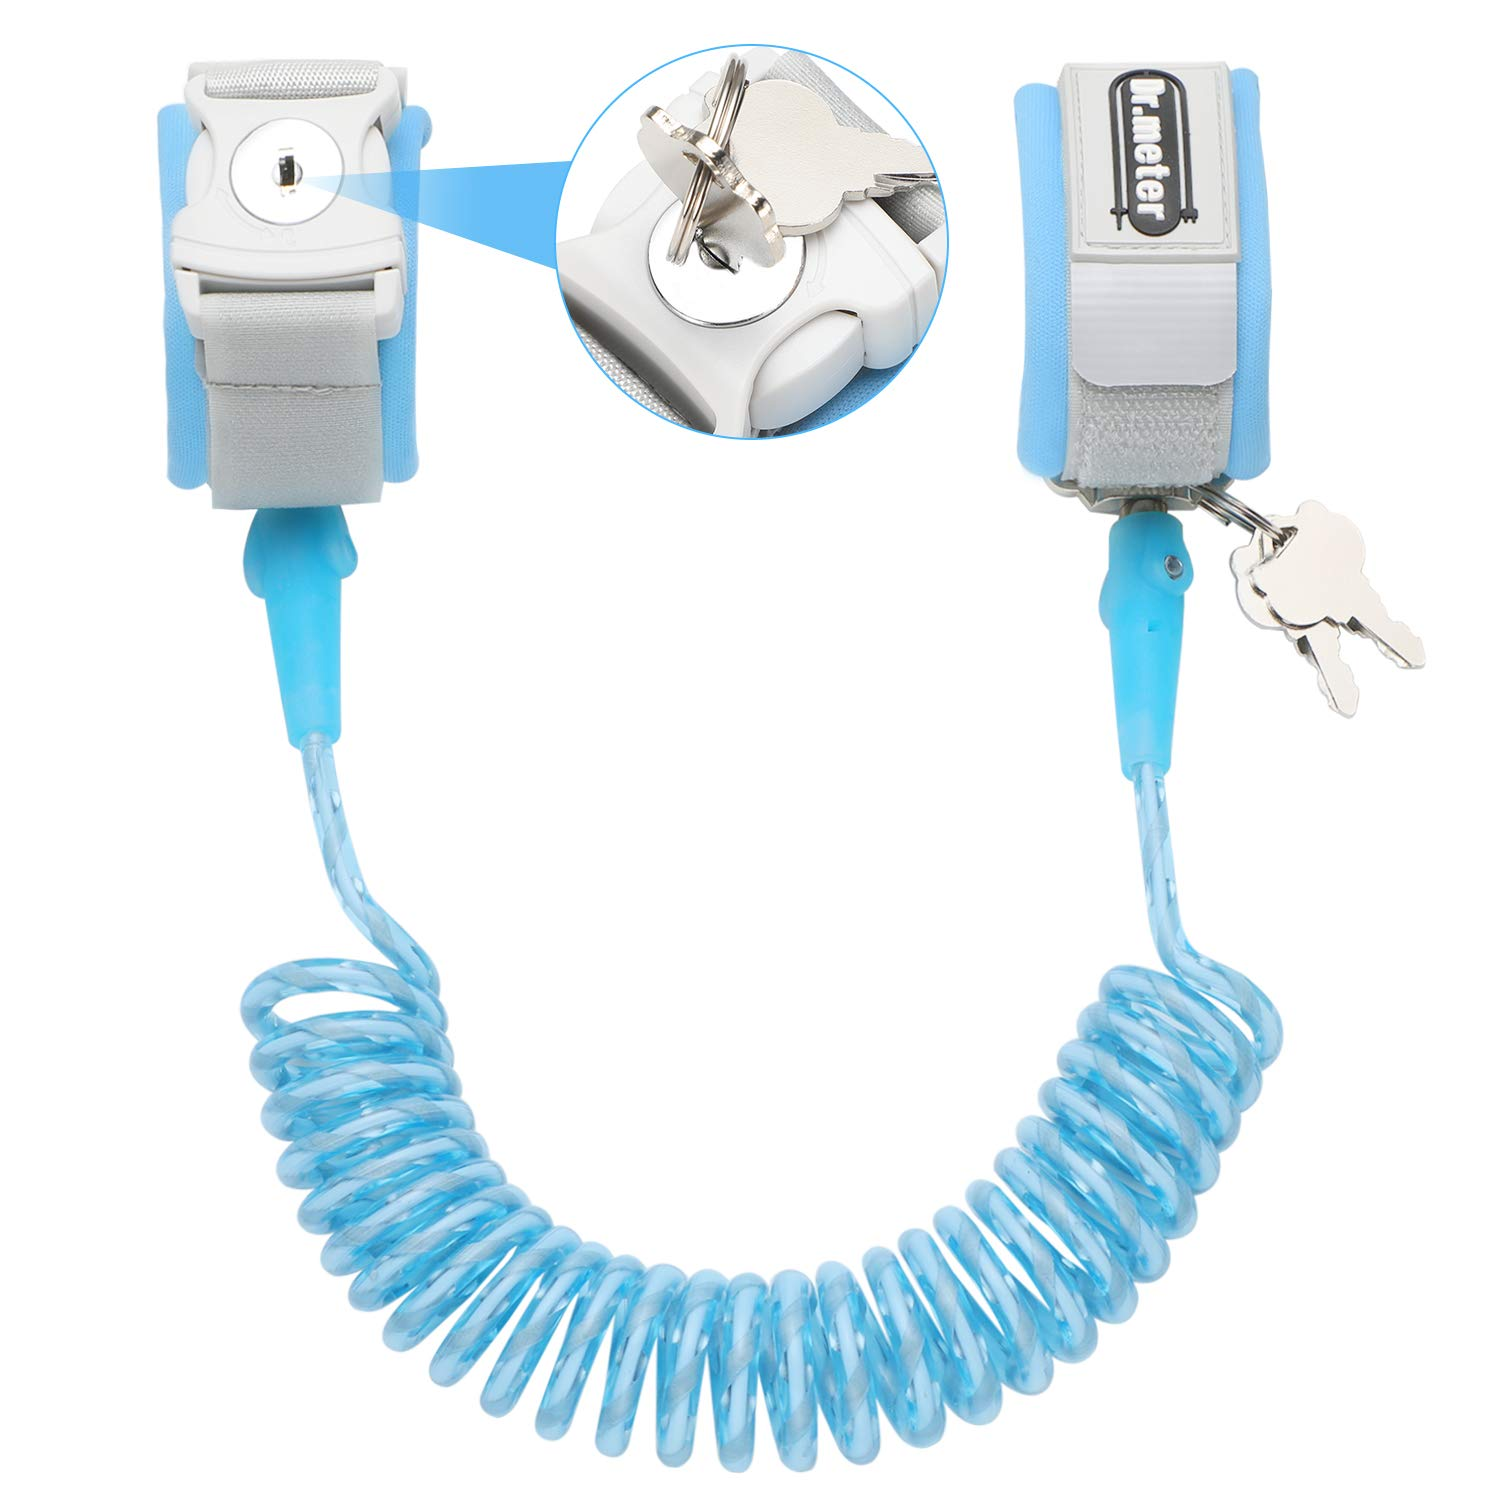 Toddler Leash, Dr.meter Anti Lost Wrist Link Secure Walking Harness with Key Lock for Kids Baby, 2.5M / 8.2ft Safety Wristband Rope (Blue)